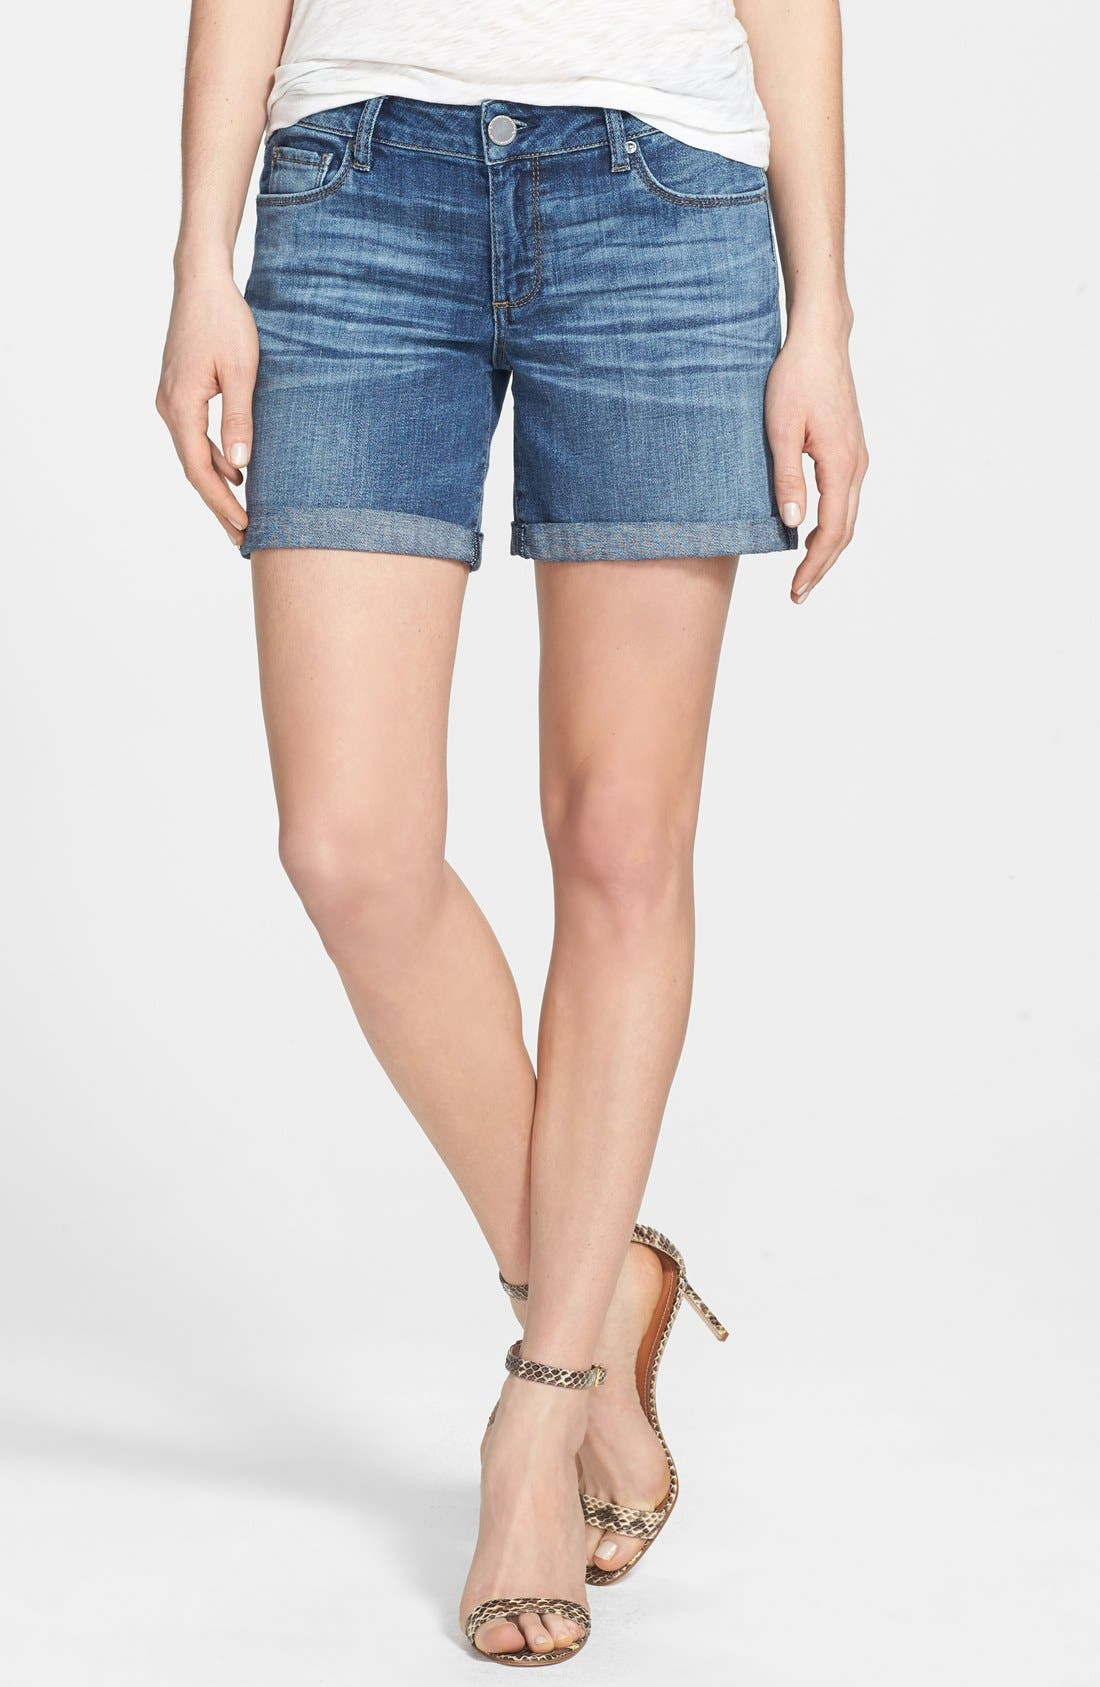 Main Image - DL1961 'Karlie' Boyfriend Denim Shorts